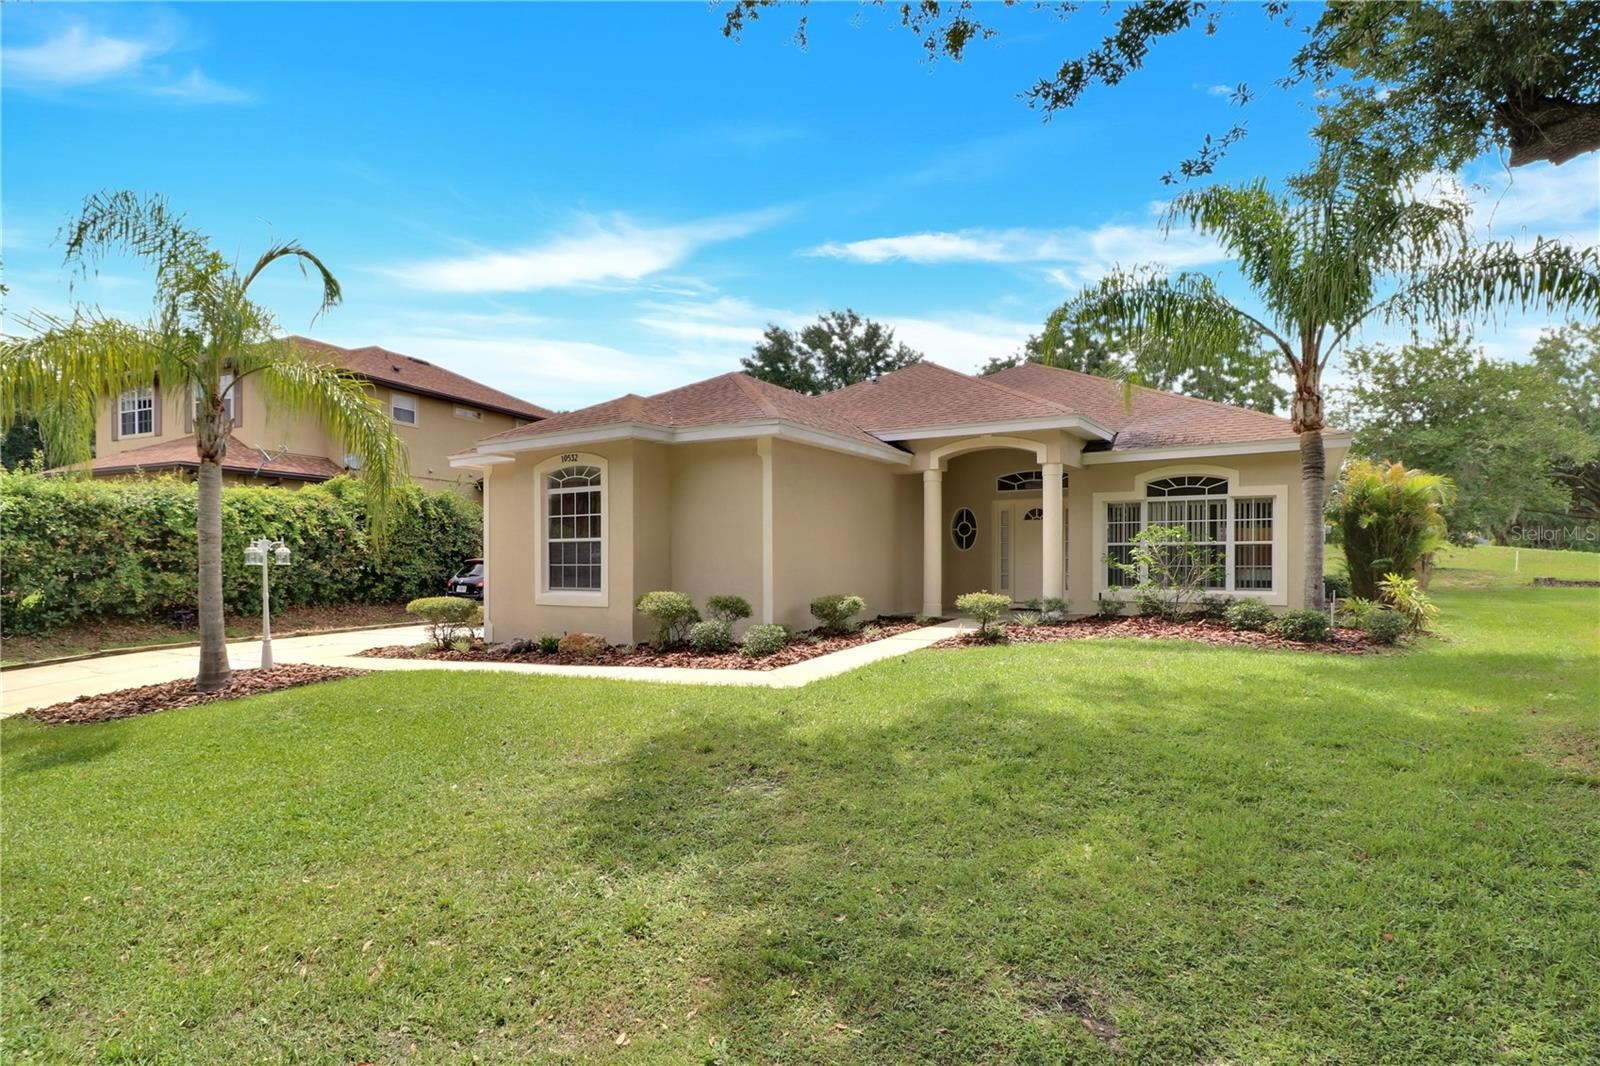 10532 EAGLES BLUFF COURT, Clermont, FL 34711 - #: O5954211